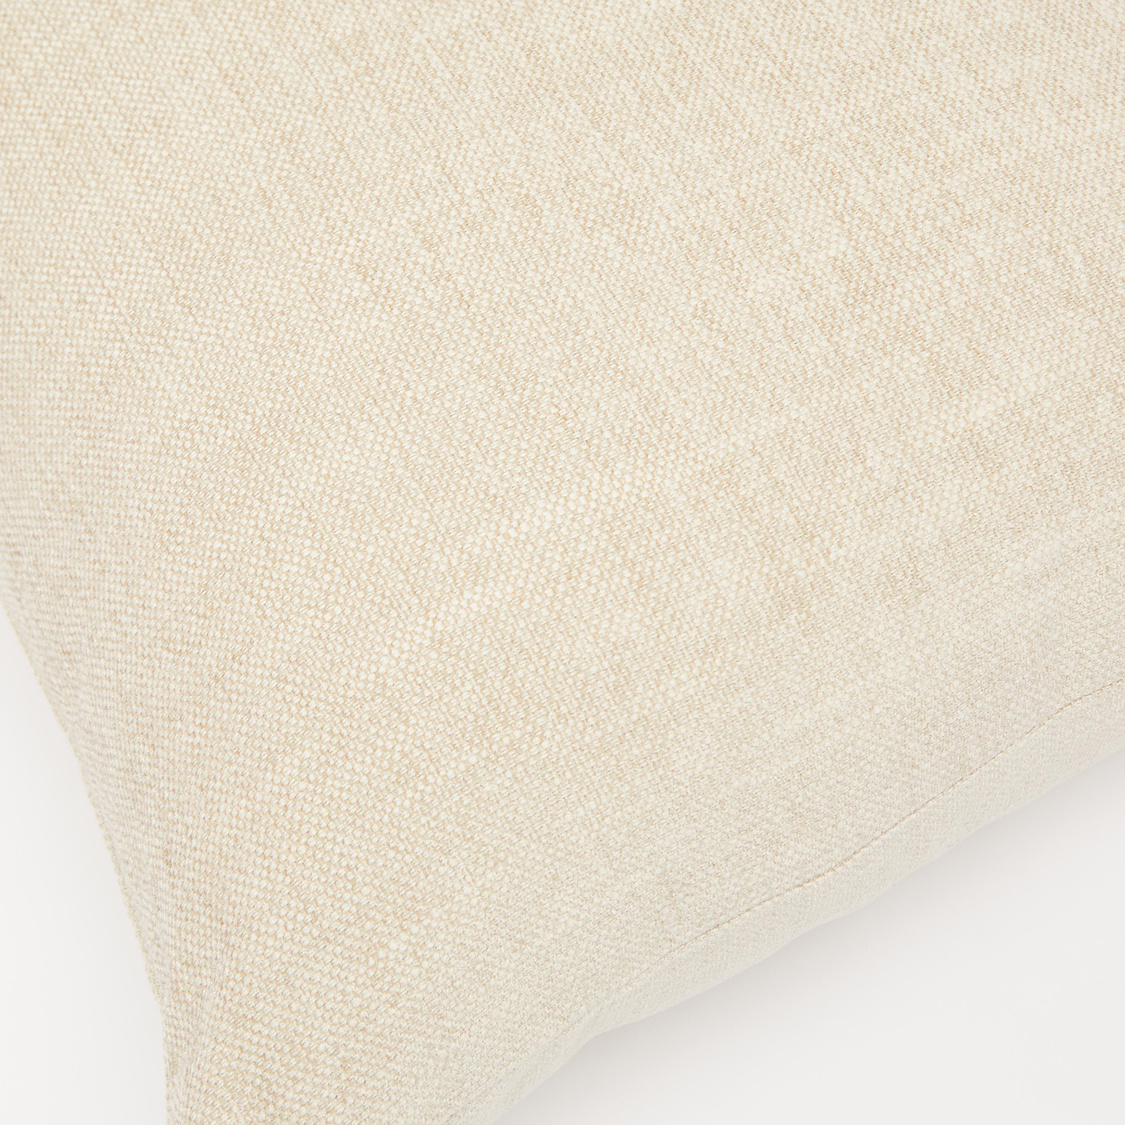 Textured Square Filled Cushion - 43x43 cms